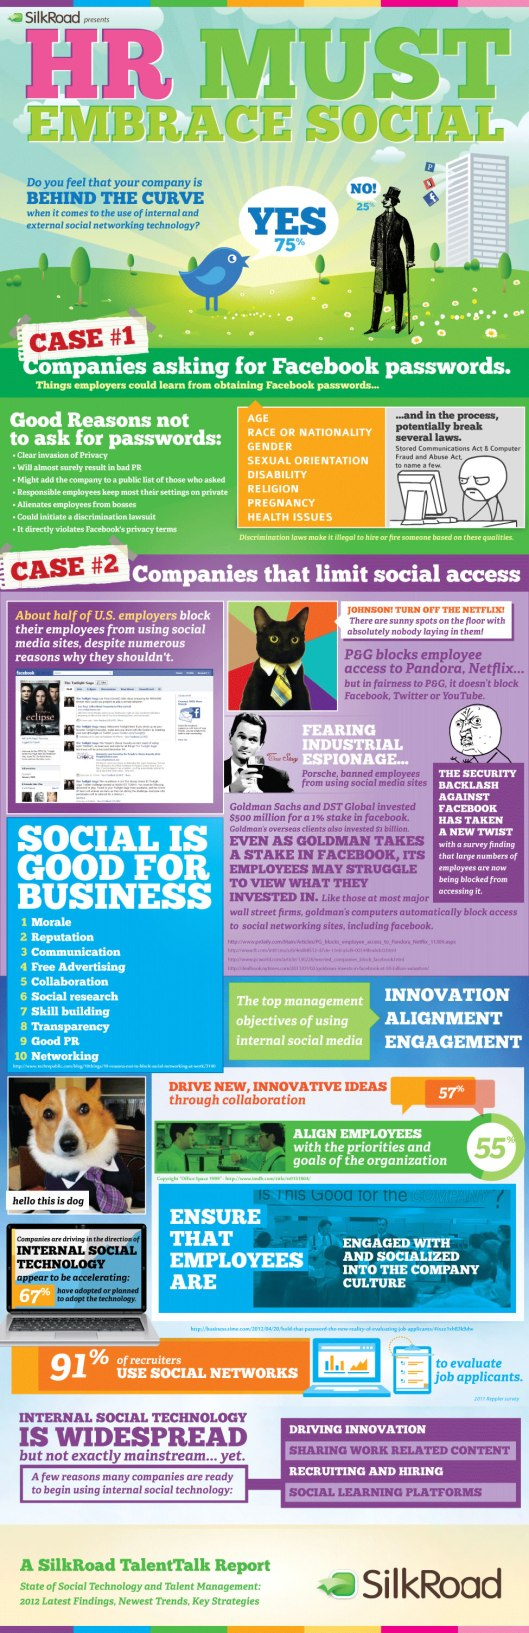 Silkroad Why HR Must Embrace Social